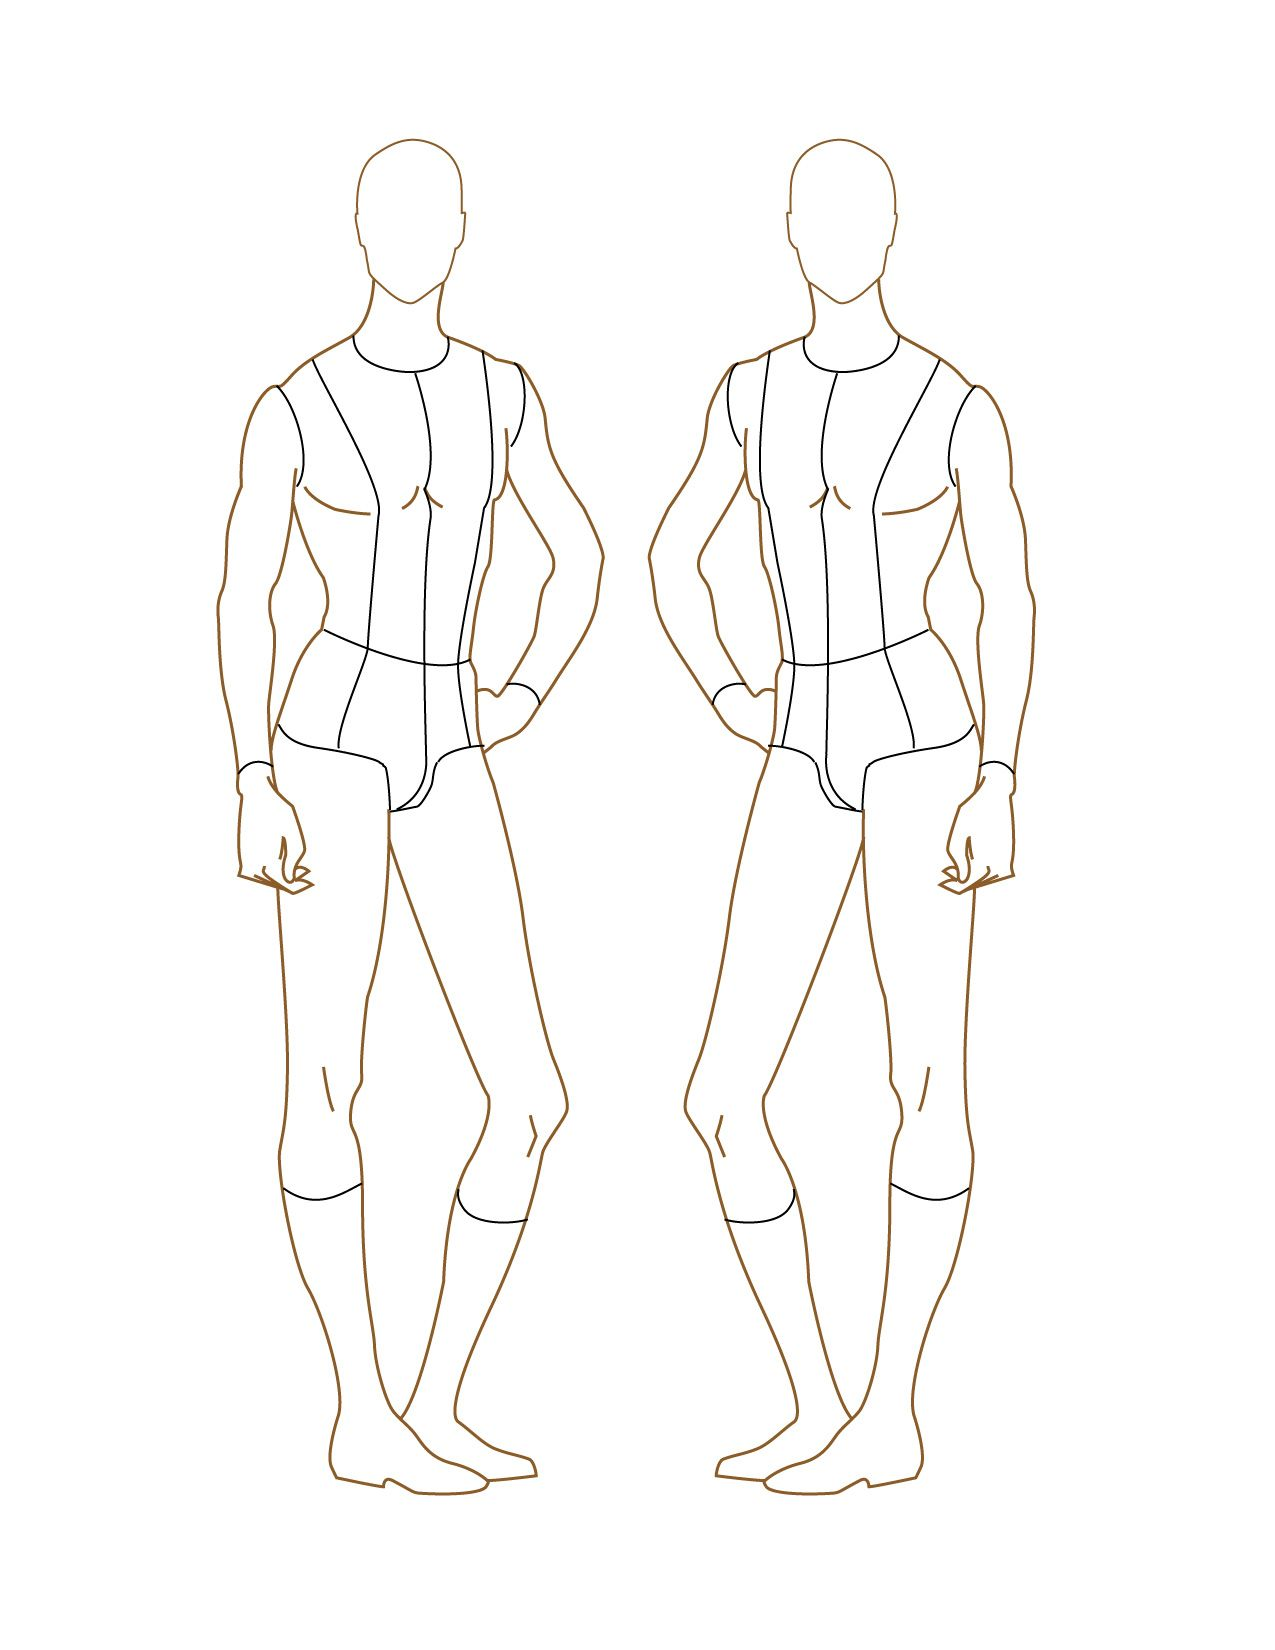 How to draw figures for fashion design 82